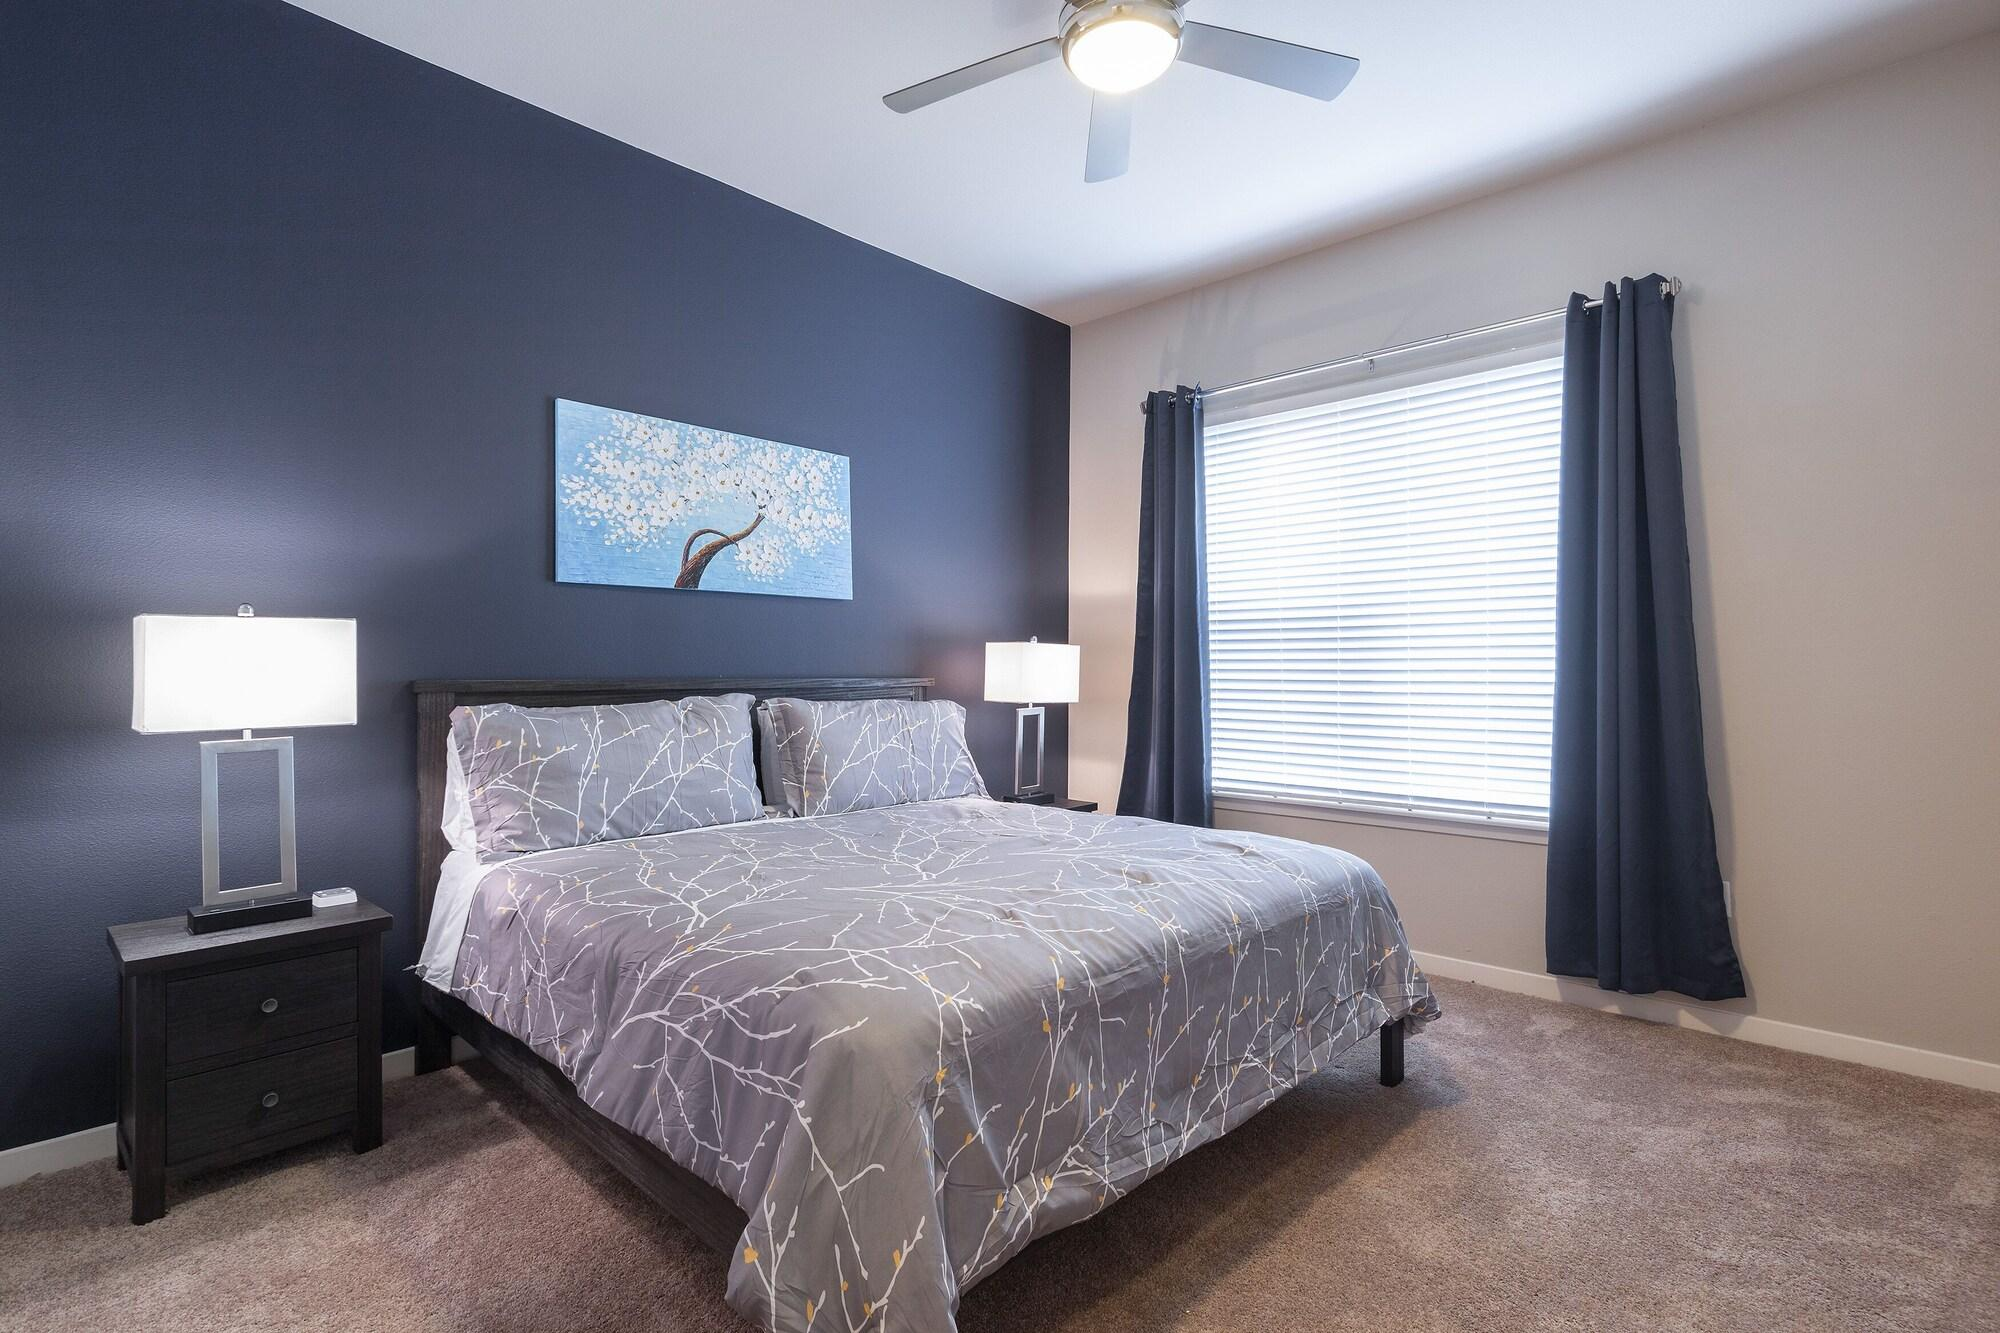 King Sized BED Luxurious MED Center Fully Equipped Condo